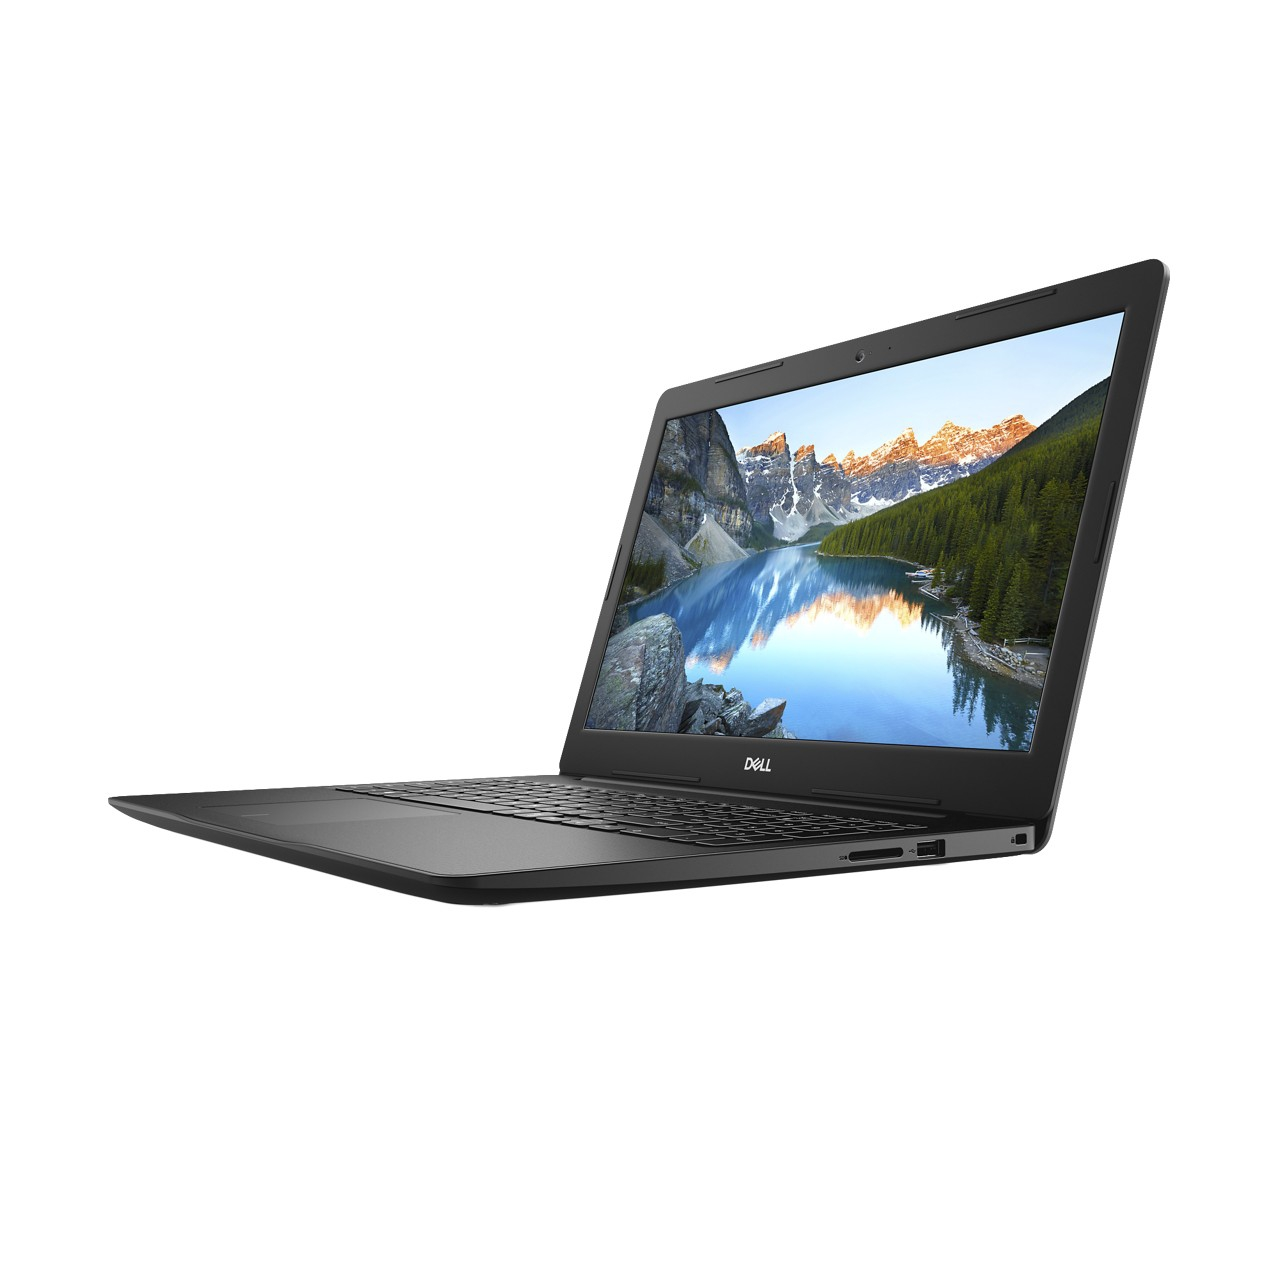 Notebook Dell Inspiron 3584 Core I3 8130u Memoria 4gb Hd 1tb Tela Led 15.6' Hd Sistema Windows 10 Home